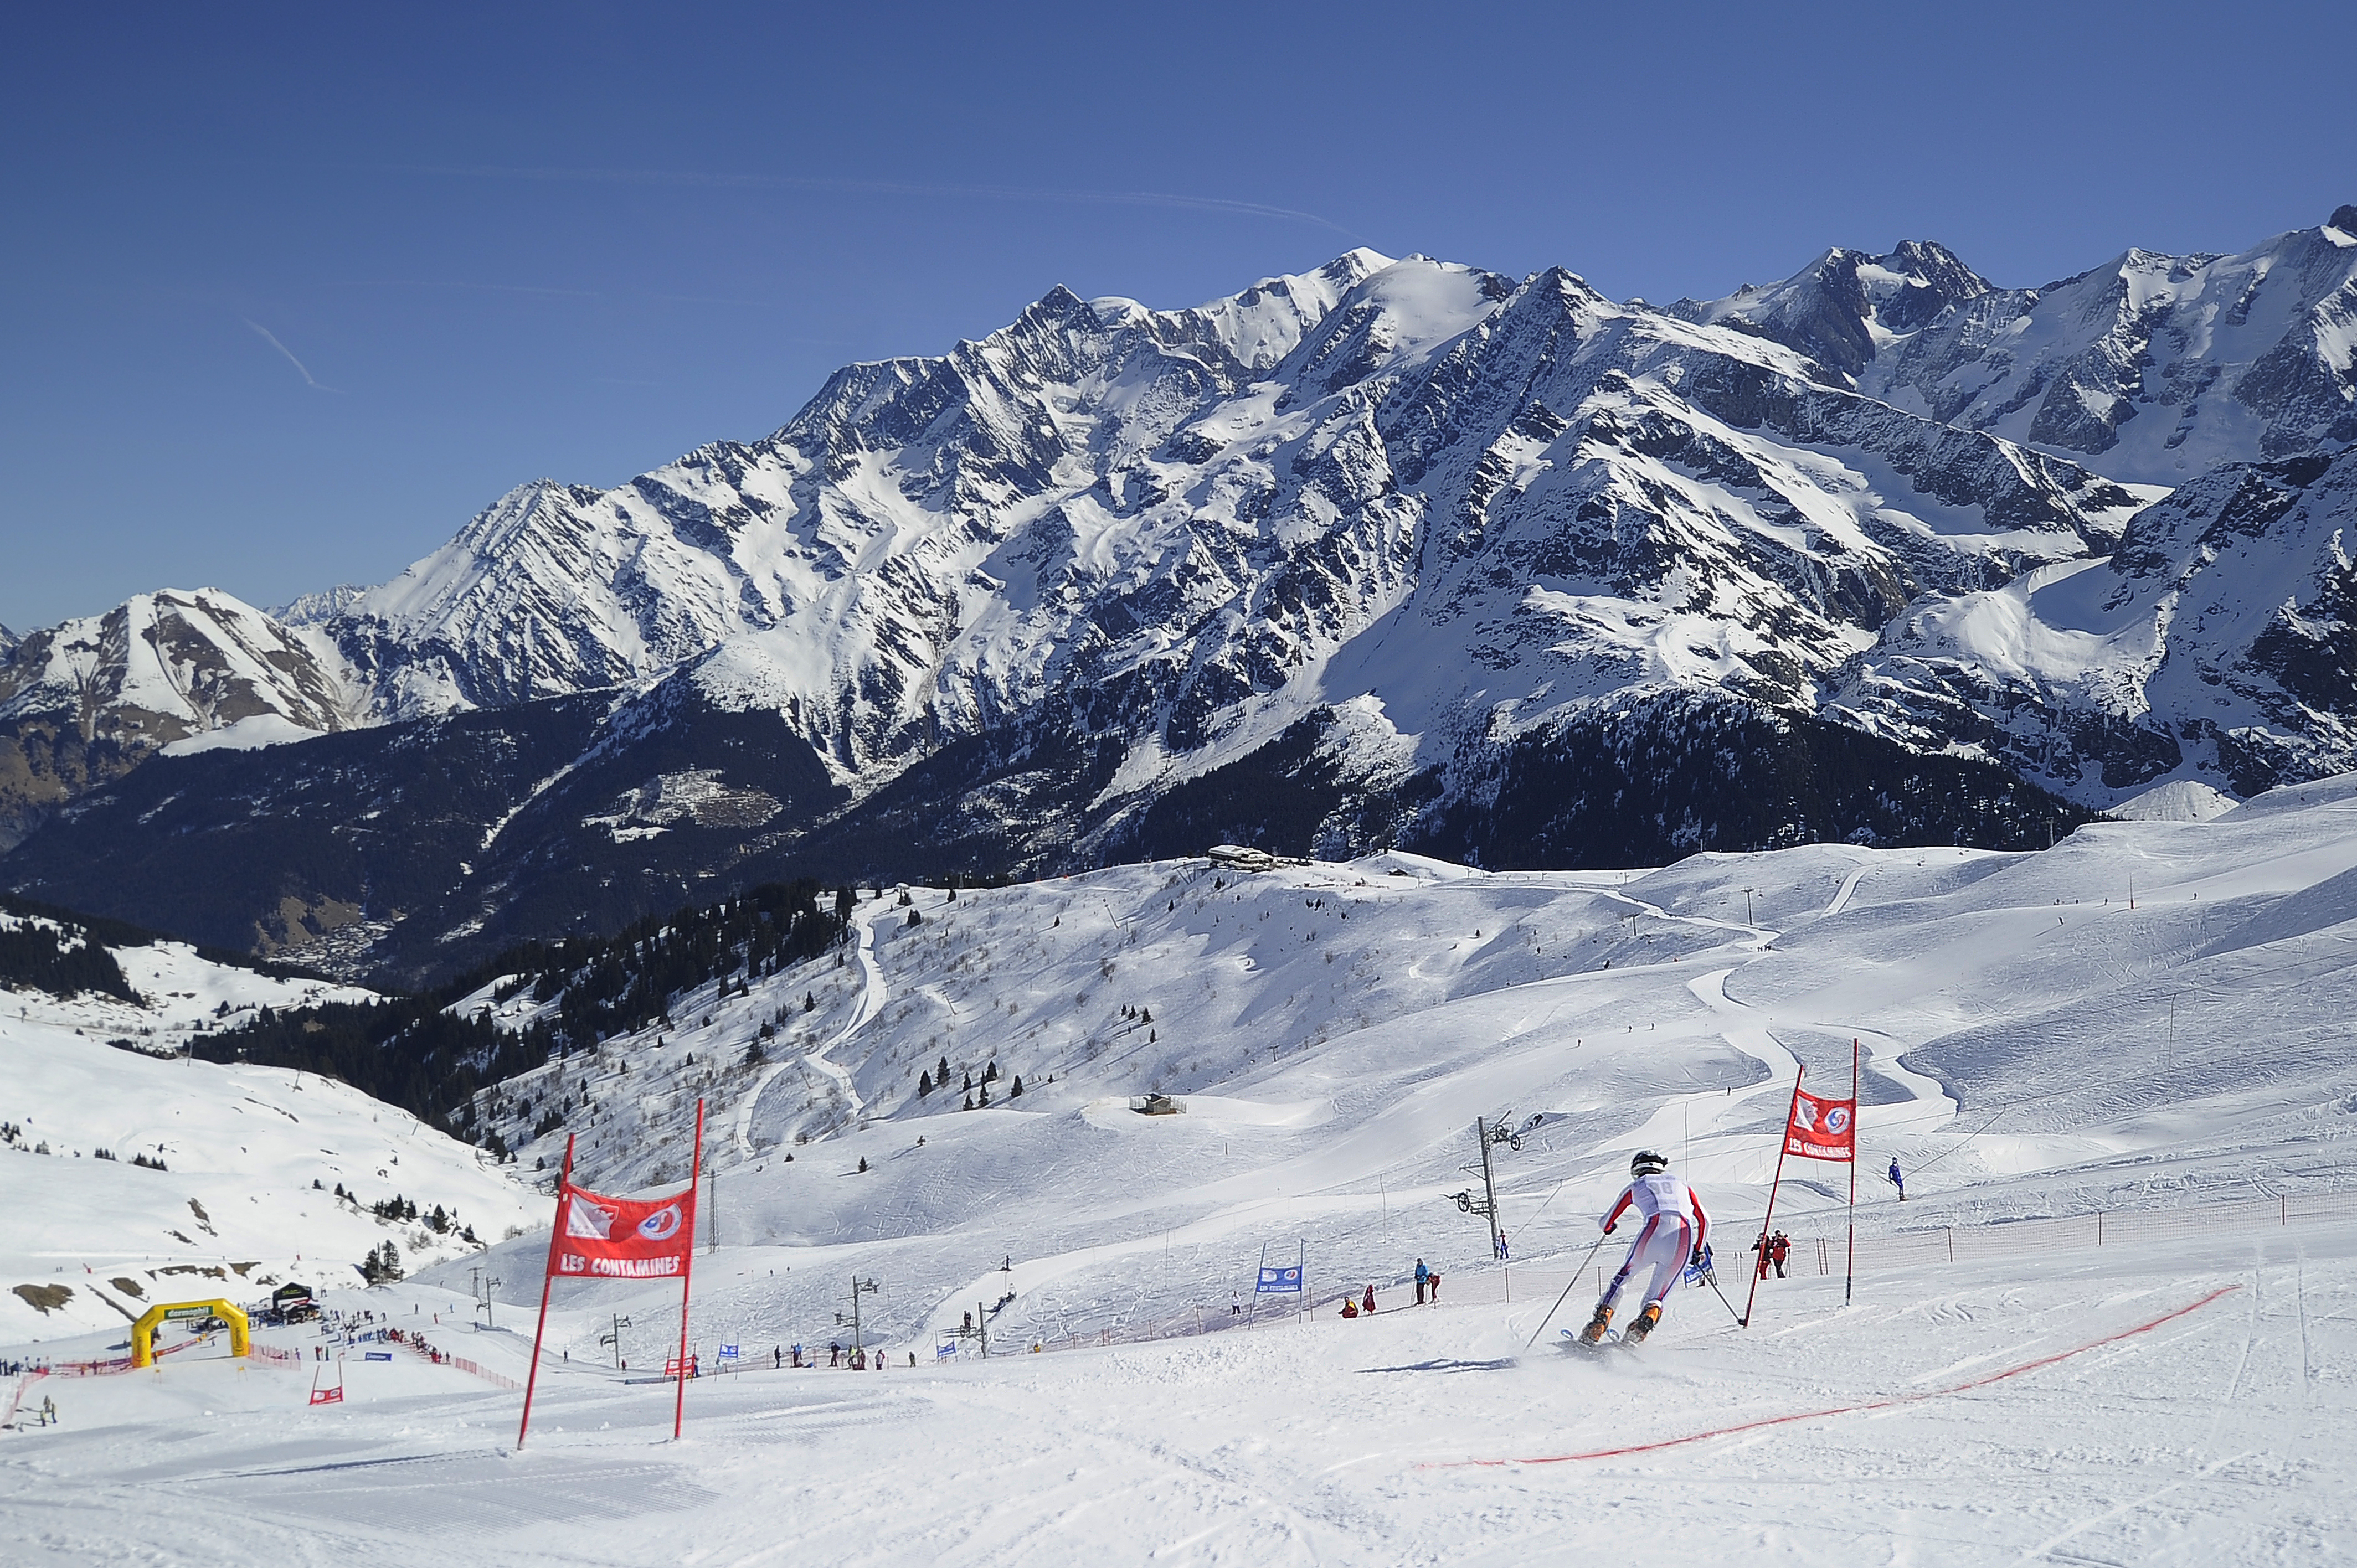 Les Contamines Ski Slopes © (Zoom)